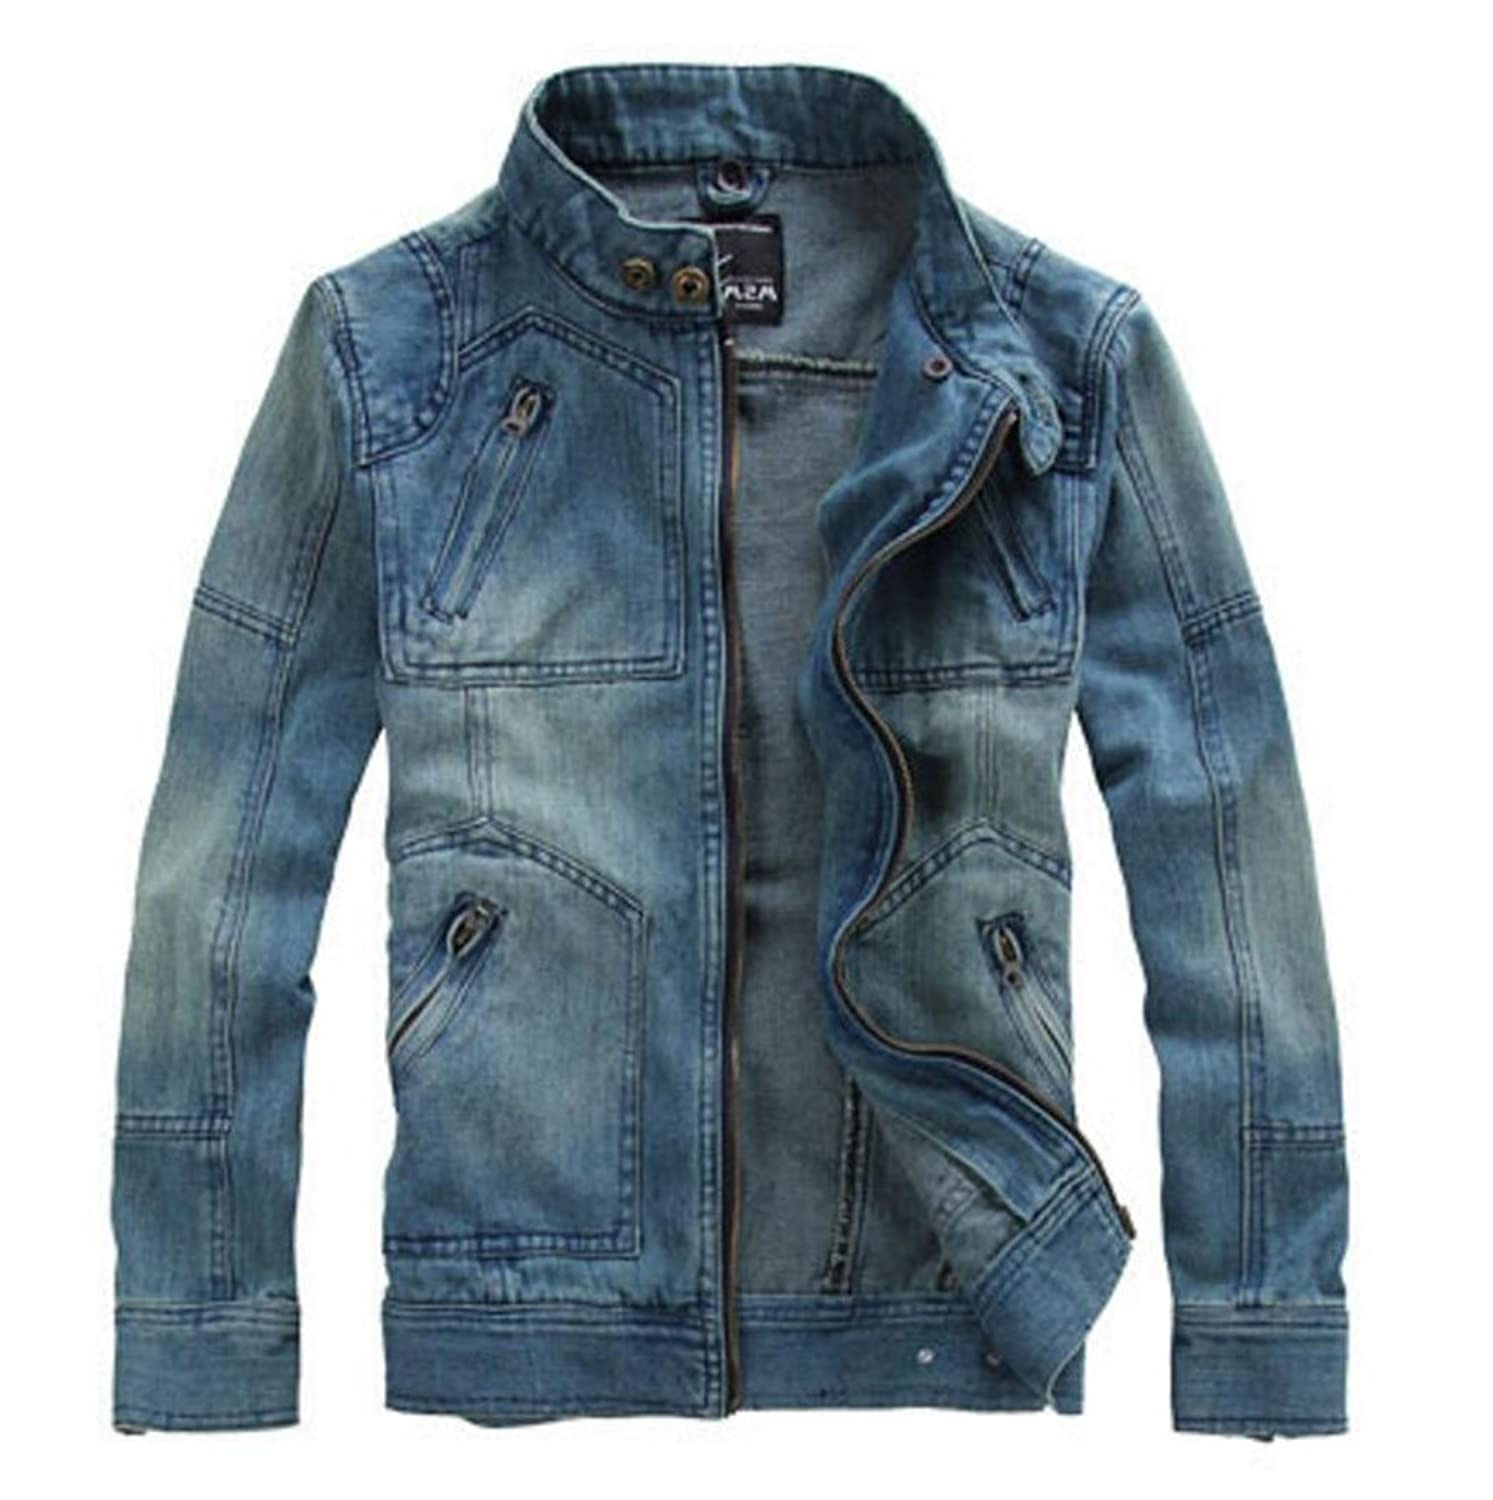 MR. R Men's Denim Jackets With Removable Hood Light Blue at Amazon ...